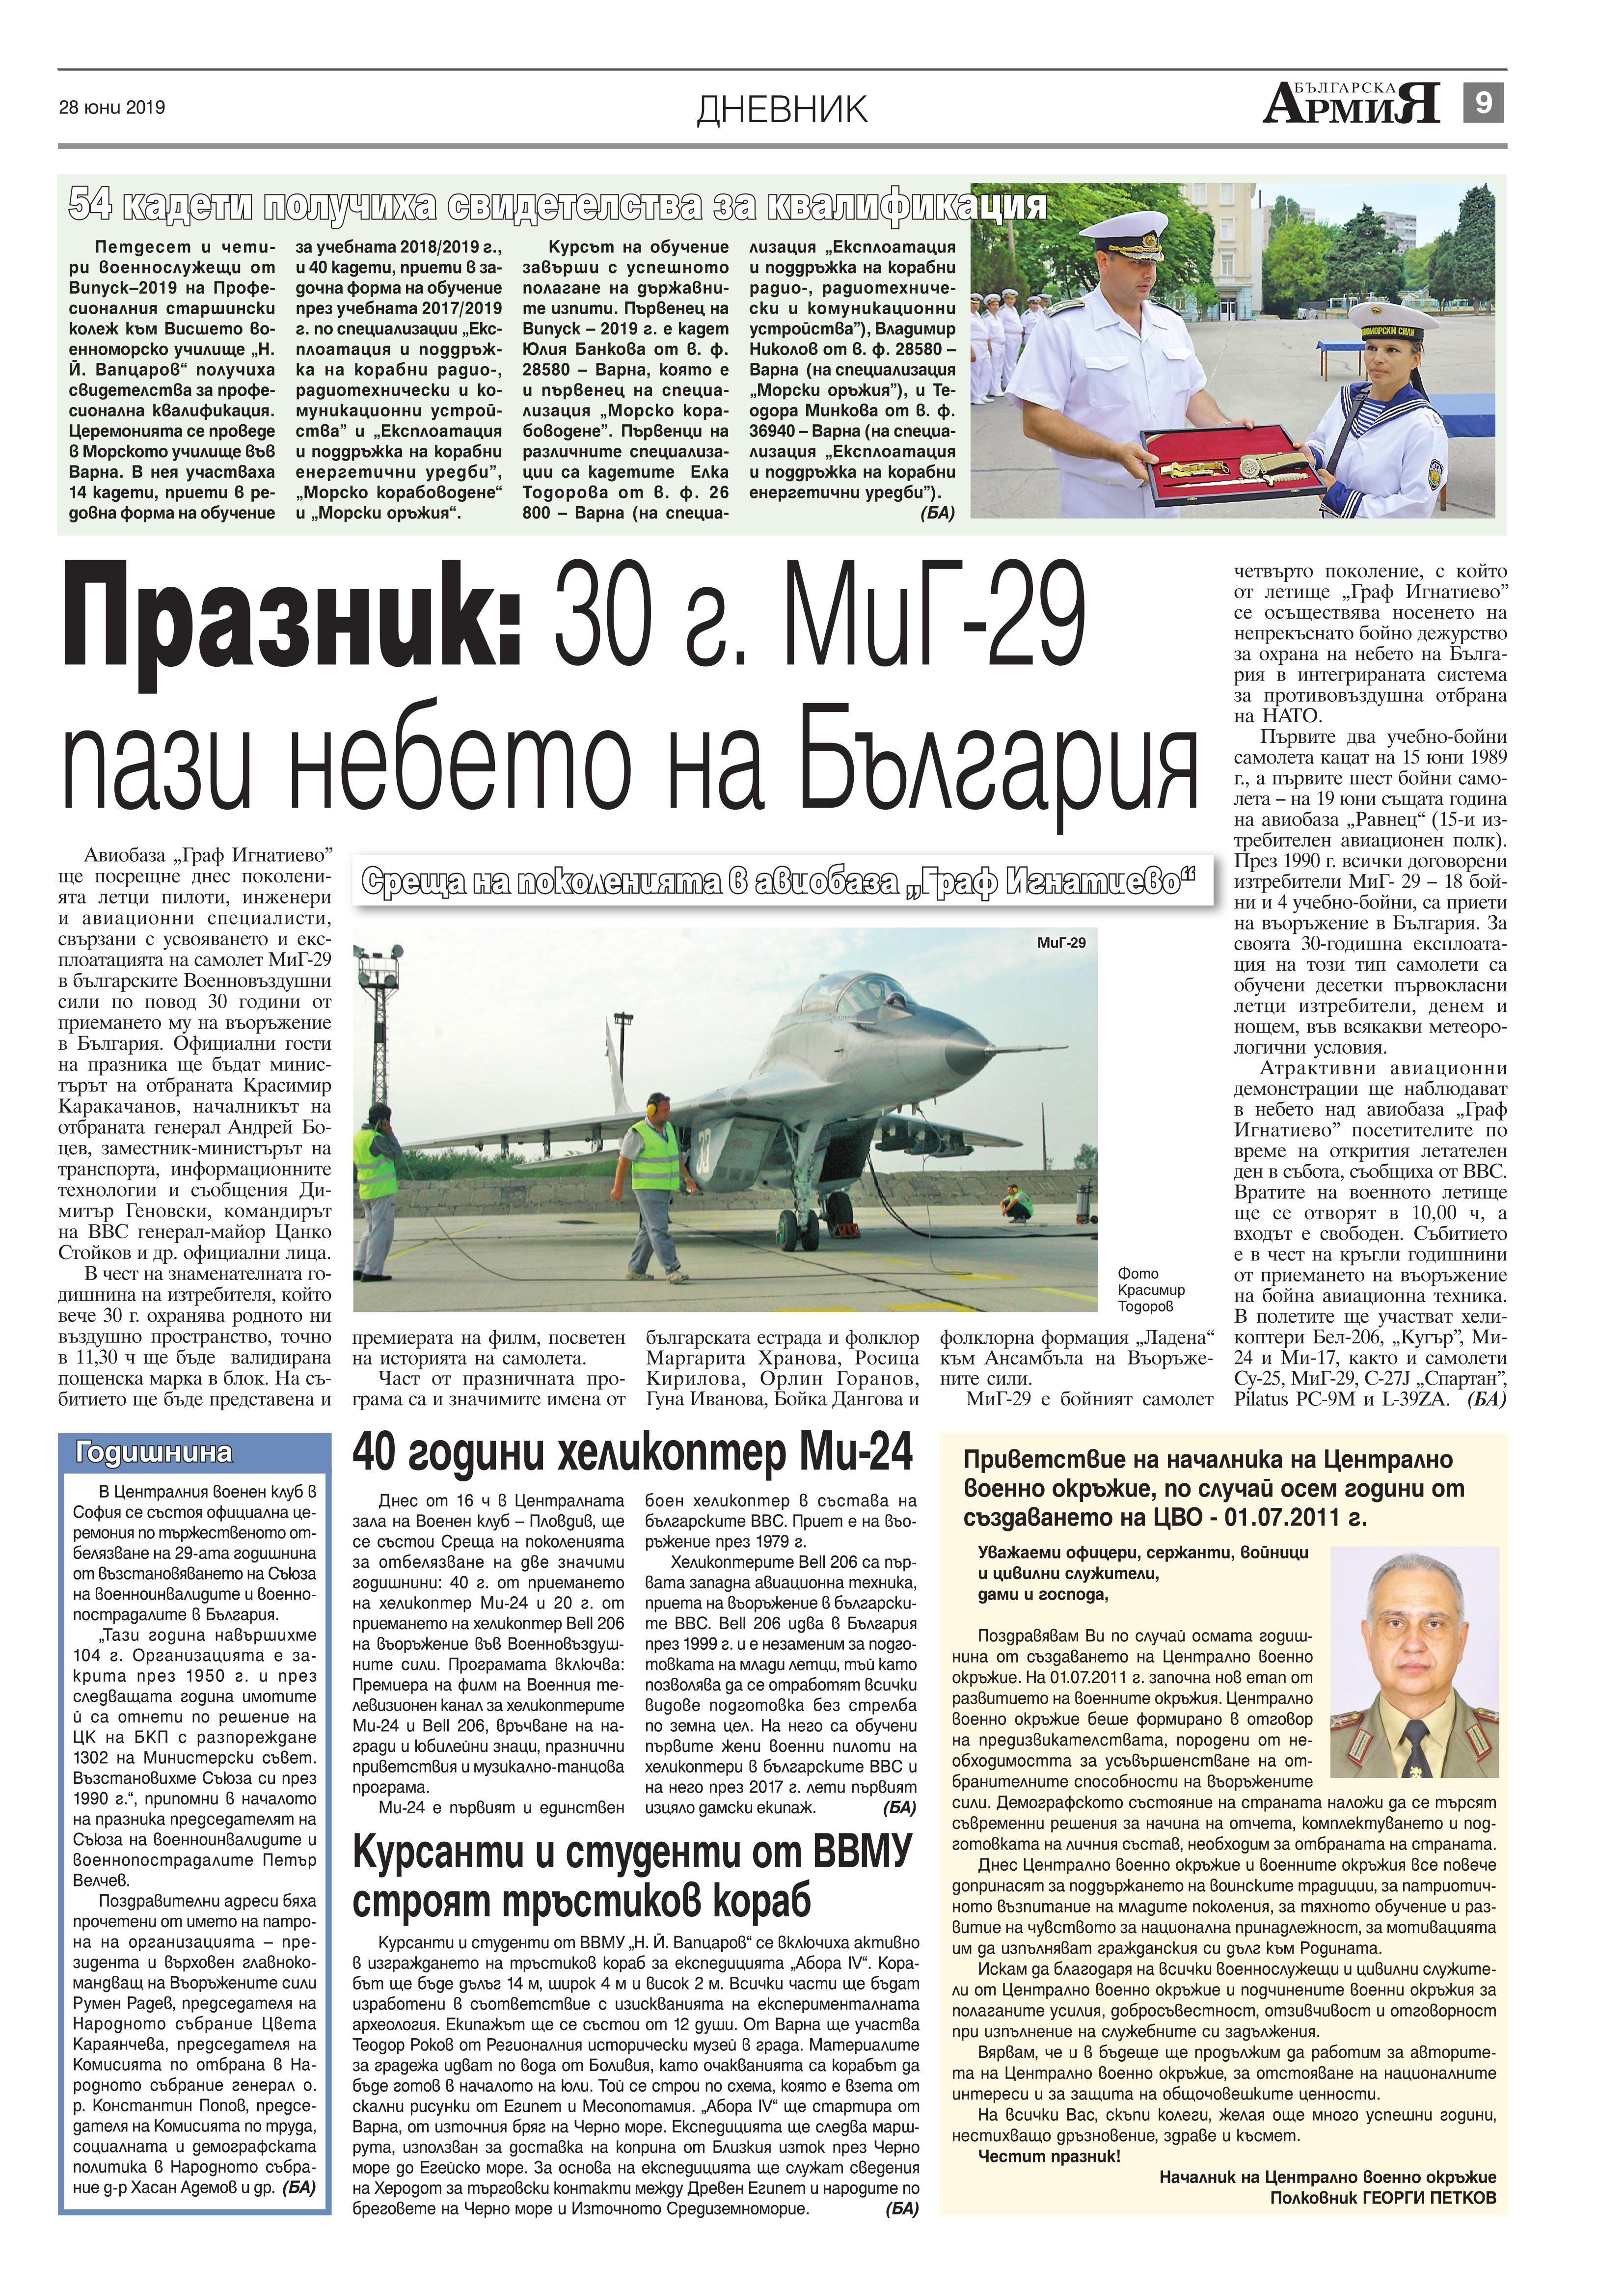 https://armymedia.bg/wp-content/uploads/2015/06/09.page1_-99.jpg